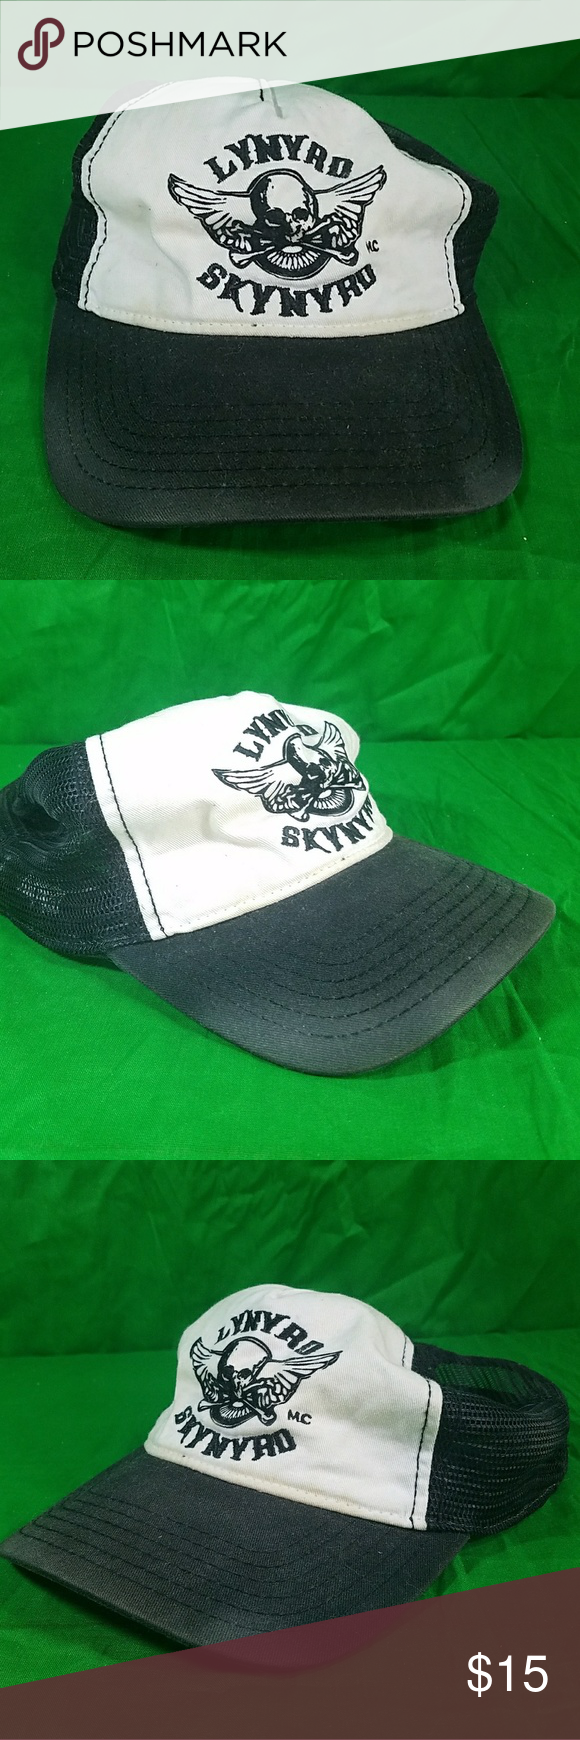 Lynyrd Skynyrd Beat Up Trashed Party Hat Snapback Distressed Destroyed  Discolored Beat up and broke in just how you like it Winterland Accessories  Hats c997cdcbaf3